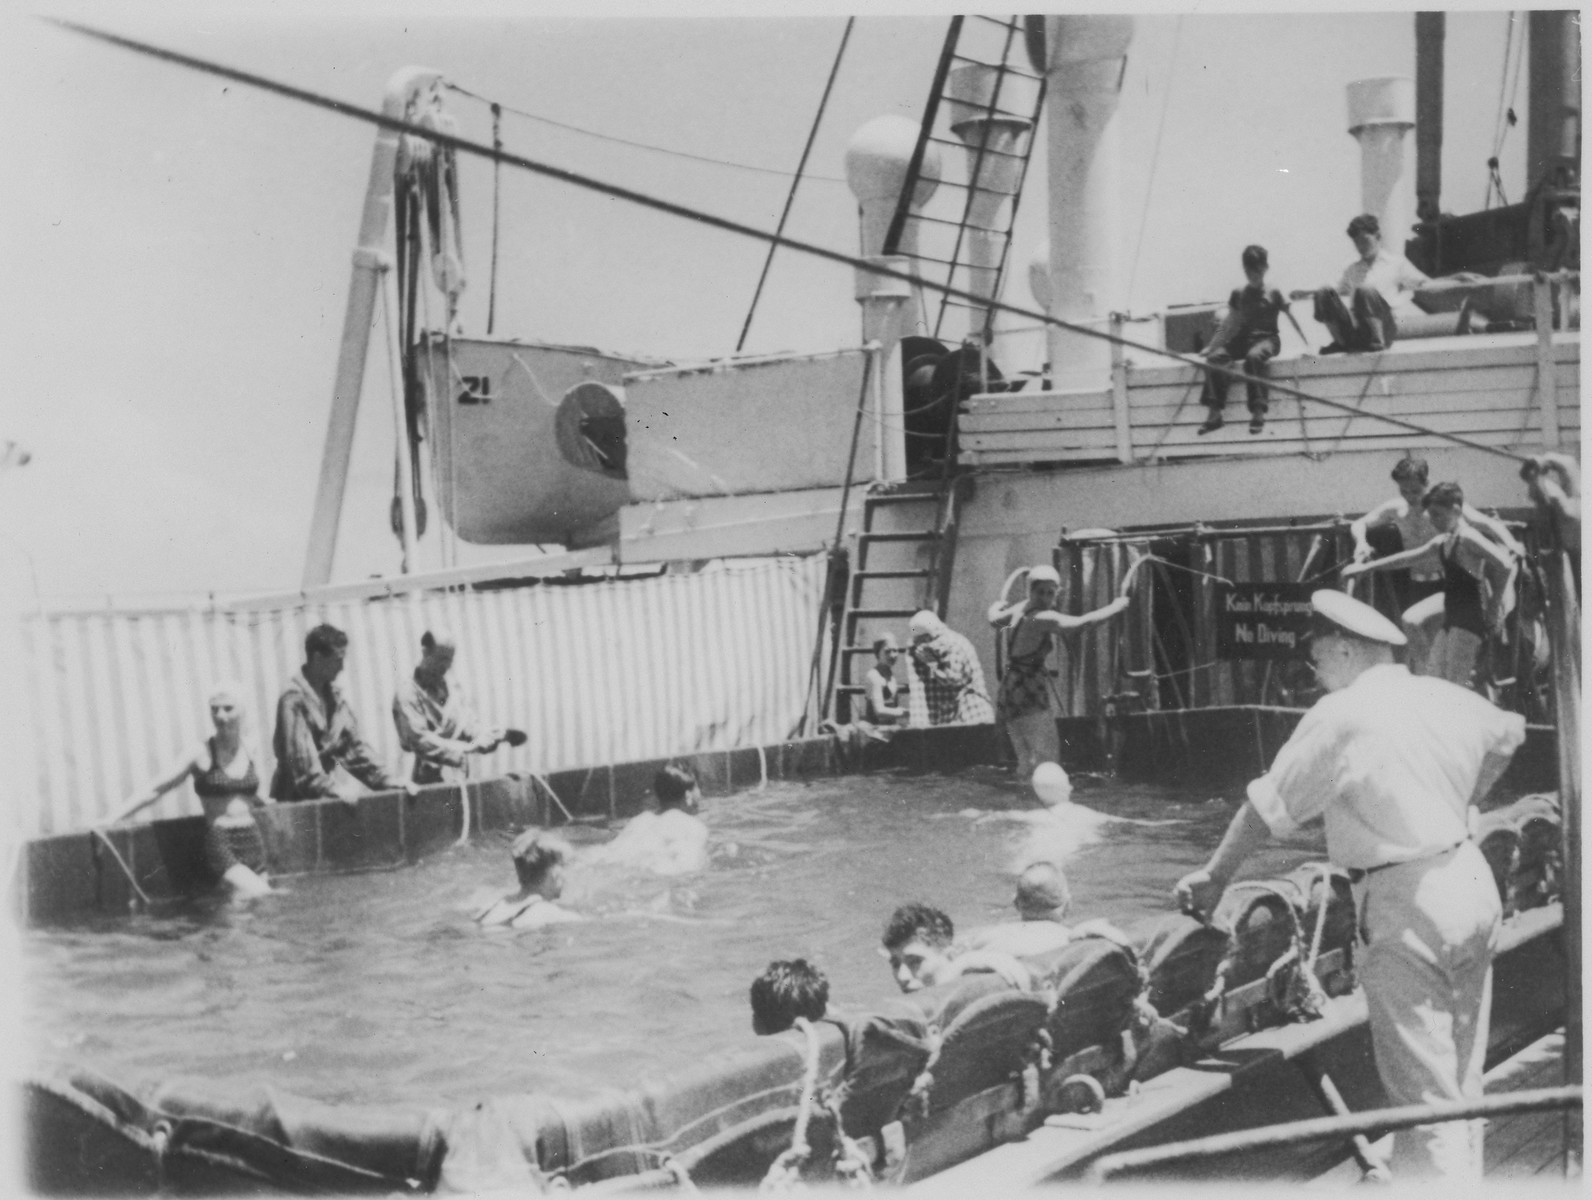 Jewish refugee passengers aboard the MS St. Louis bathe in the swimming pool on the deck of the ship.